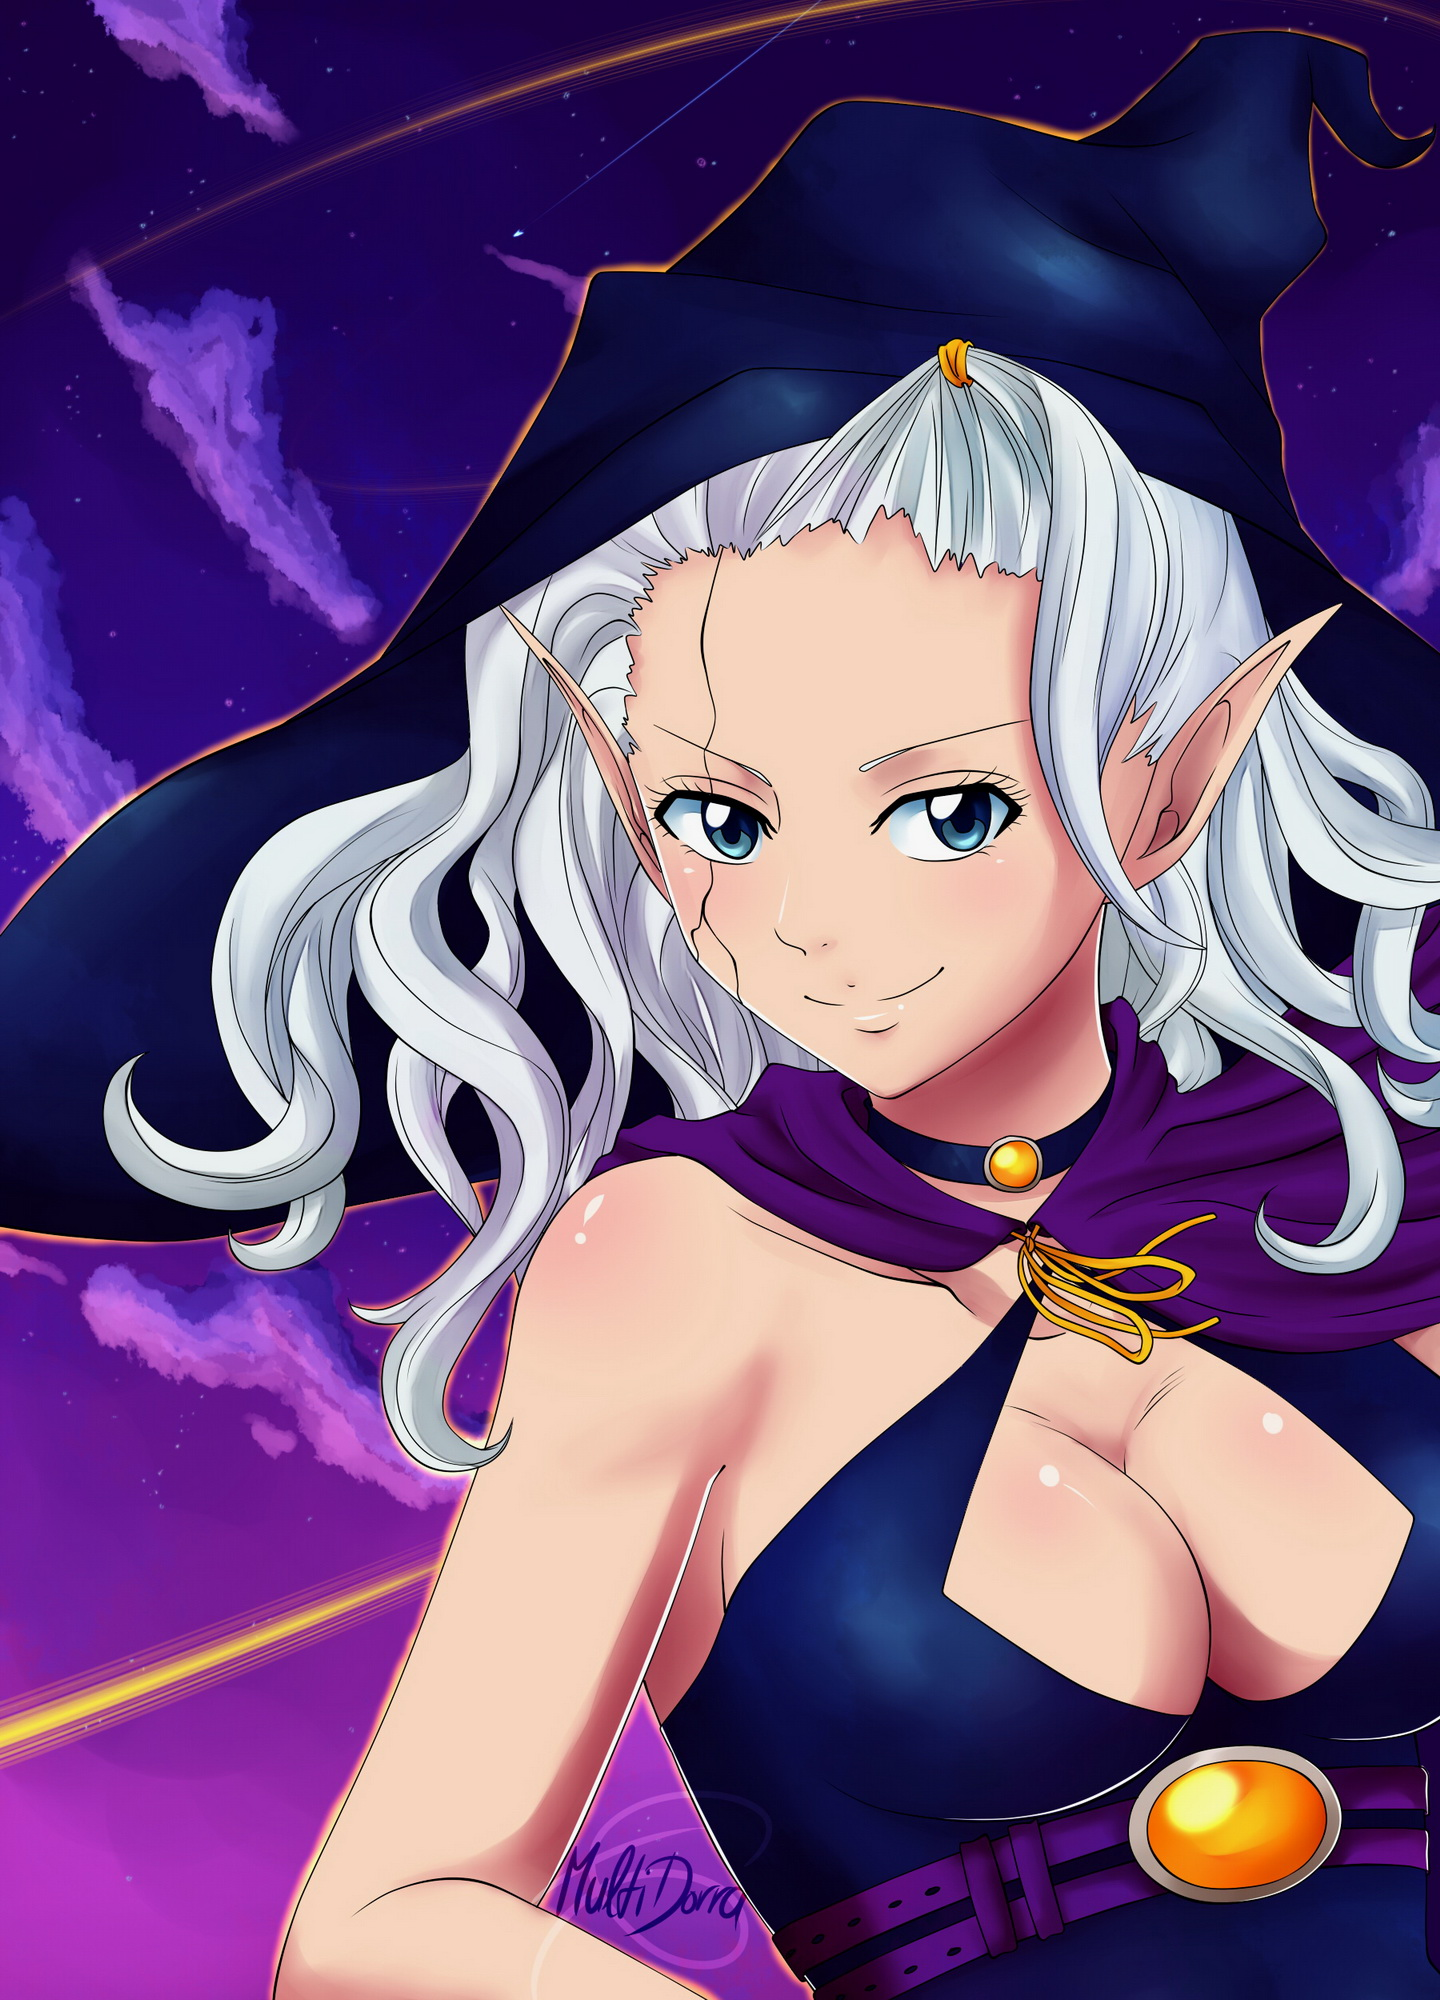 Mirajane Strauss Fairy Tail Mobile Wallpaper 1323473 Zerochan Anime Image Board Quite difficult to find a wallpaper with mira, so i decided to make my own. mirajane strauss fairy tail mobile